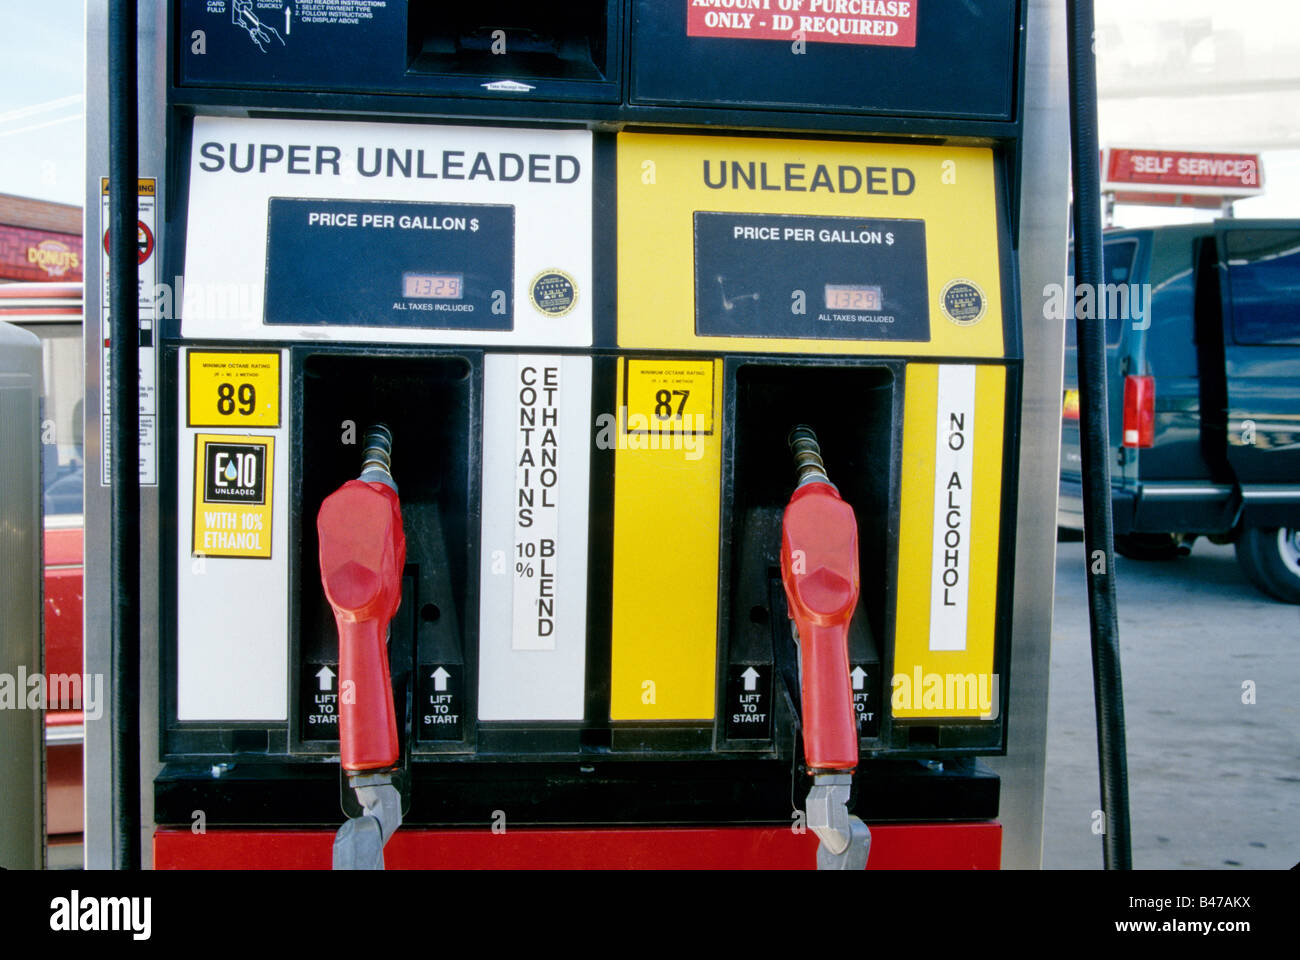 Ethanol gasoline pumps at service station. - Stock Image